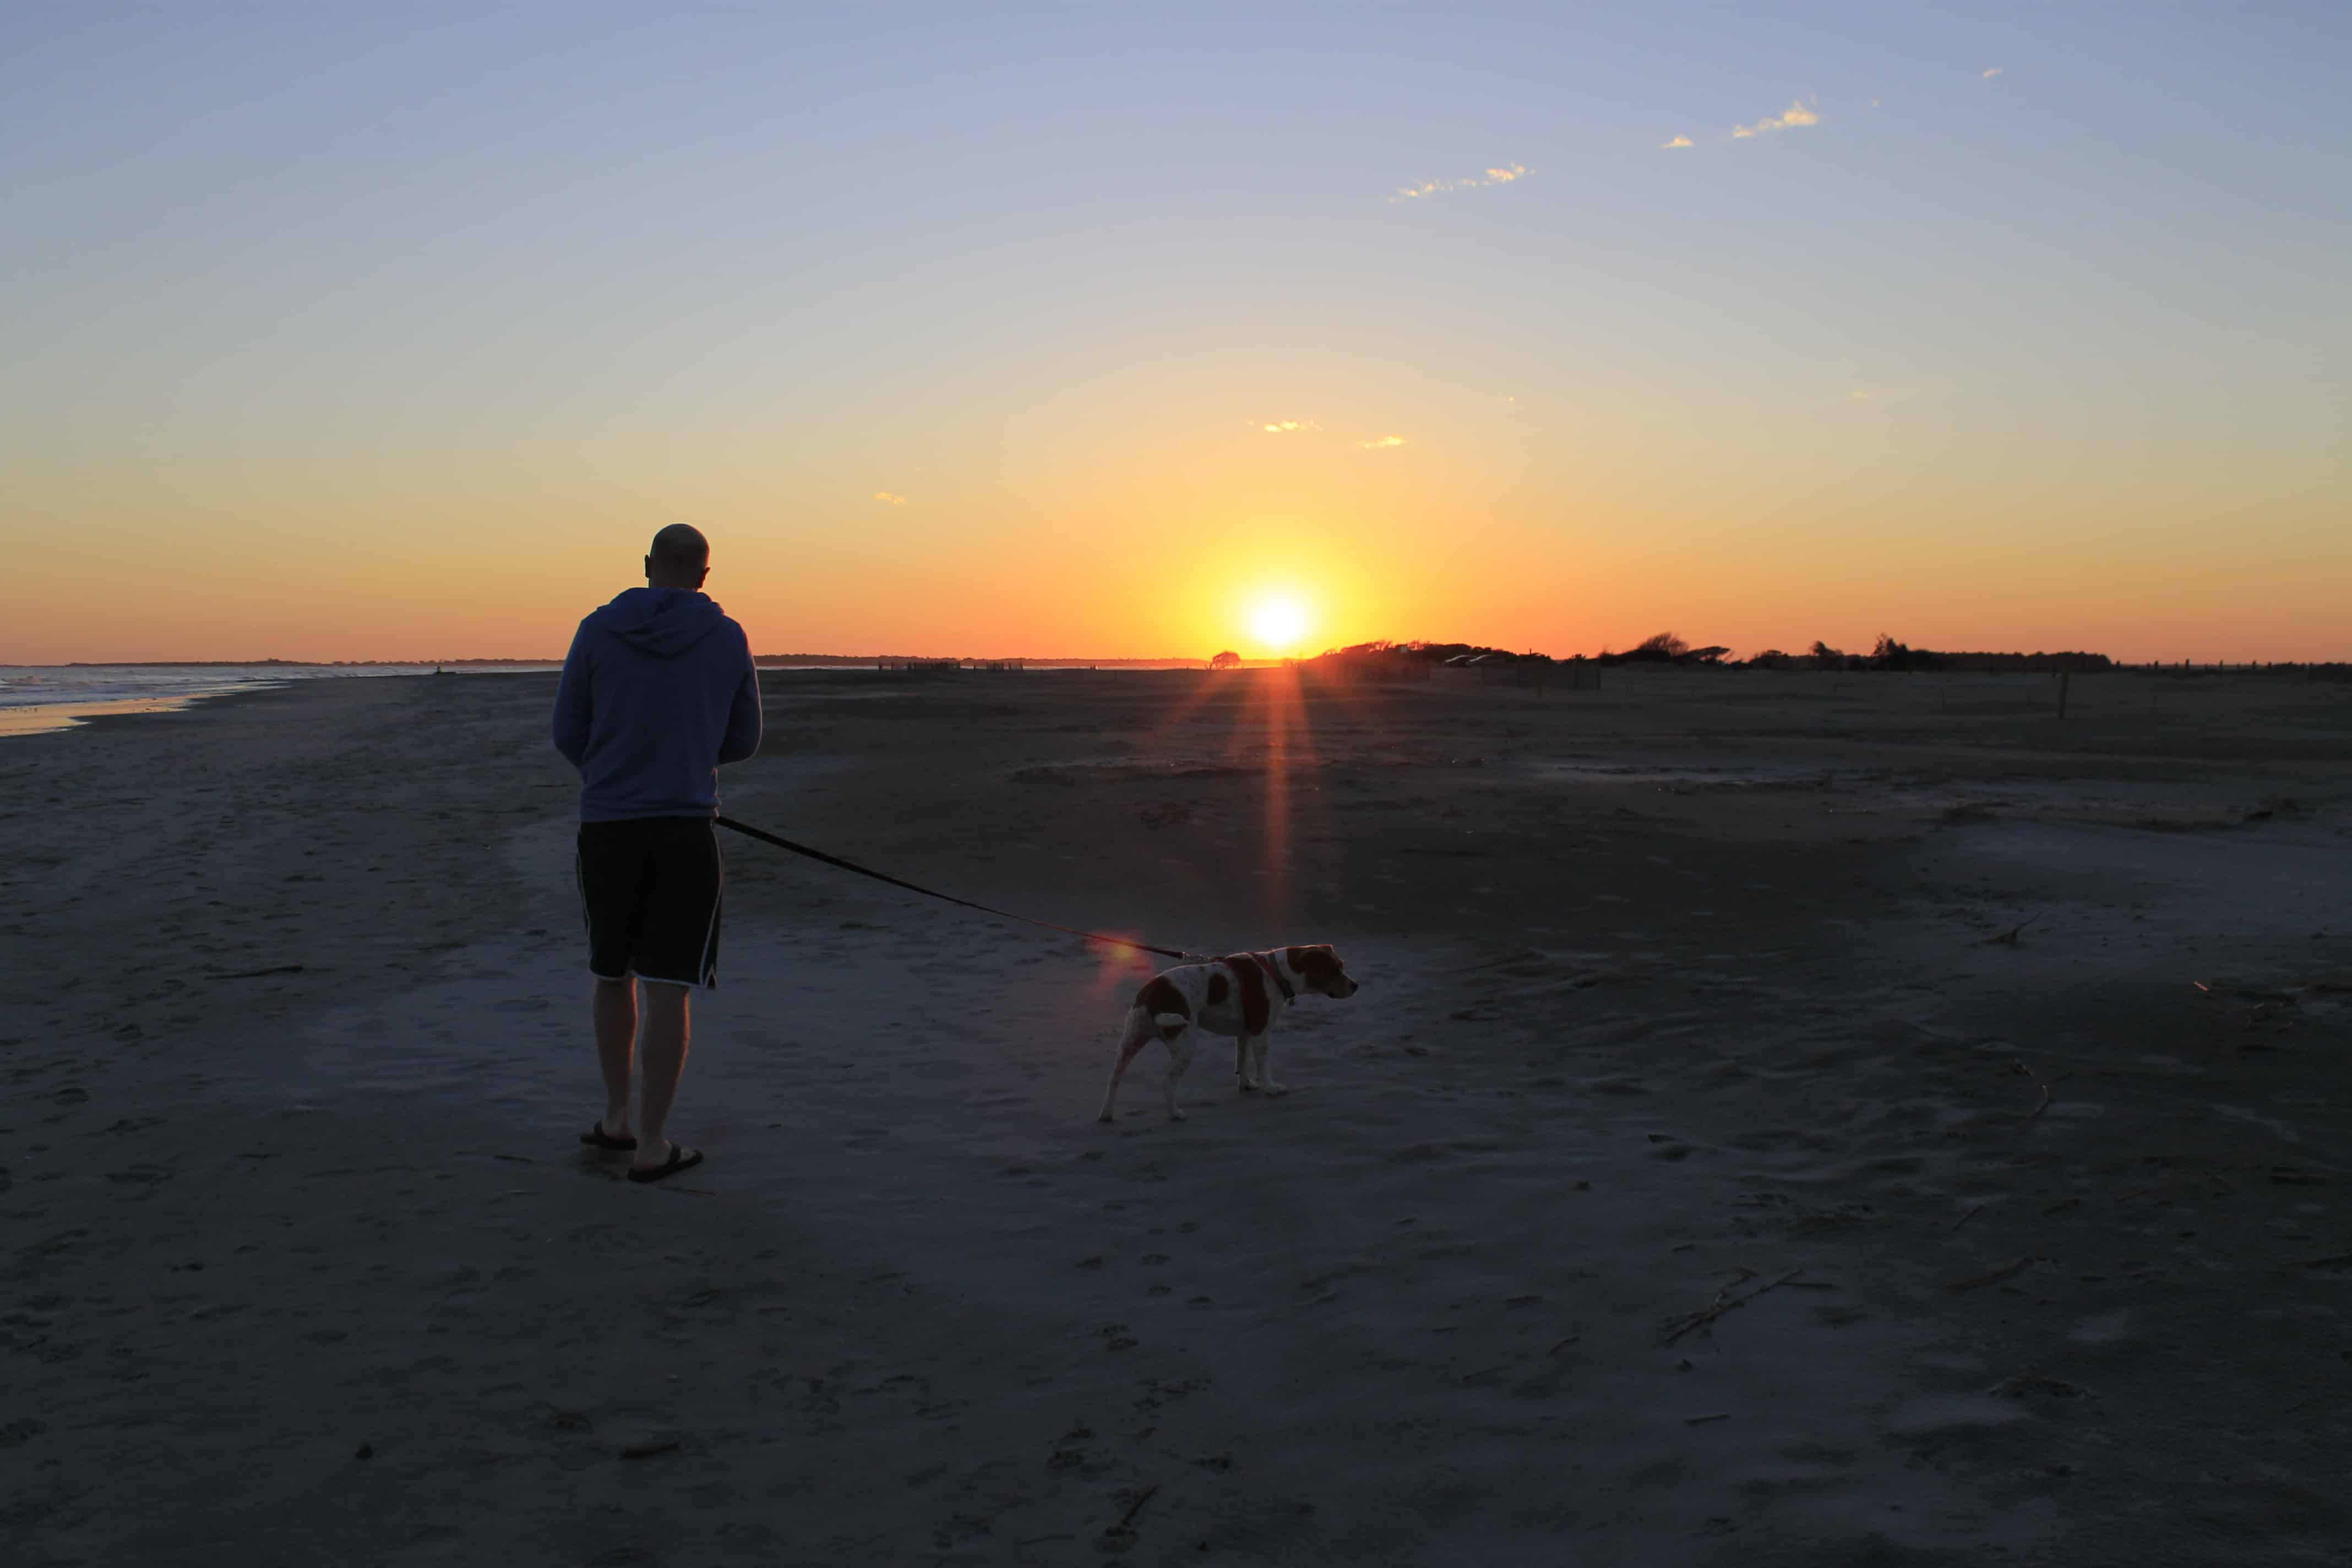 101 in 1001: Walk on the Beach at Sunset